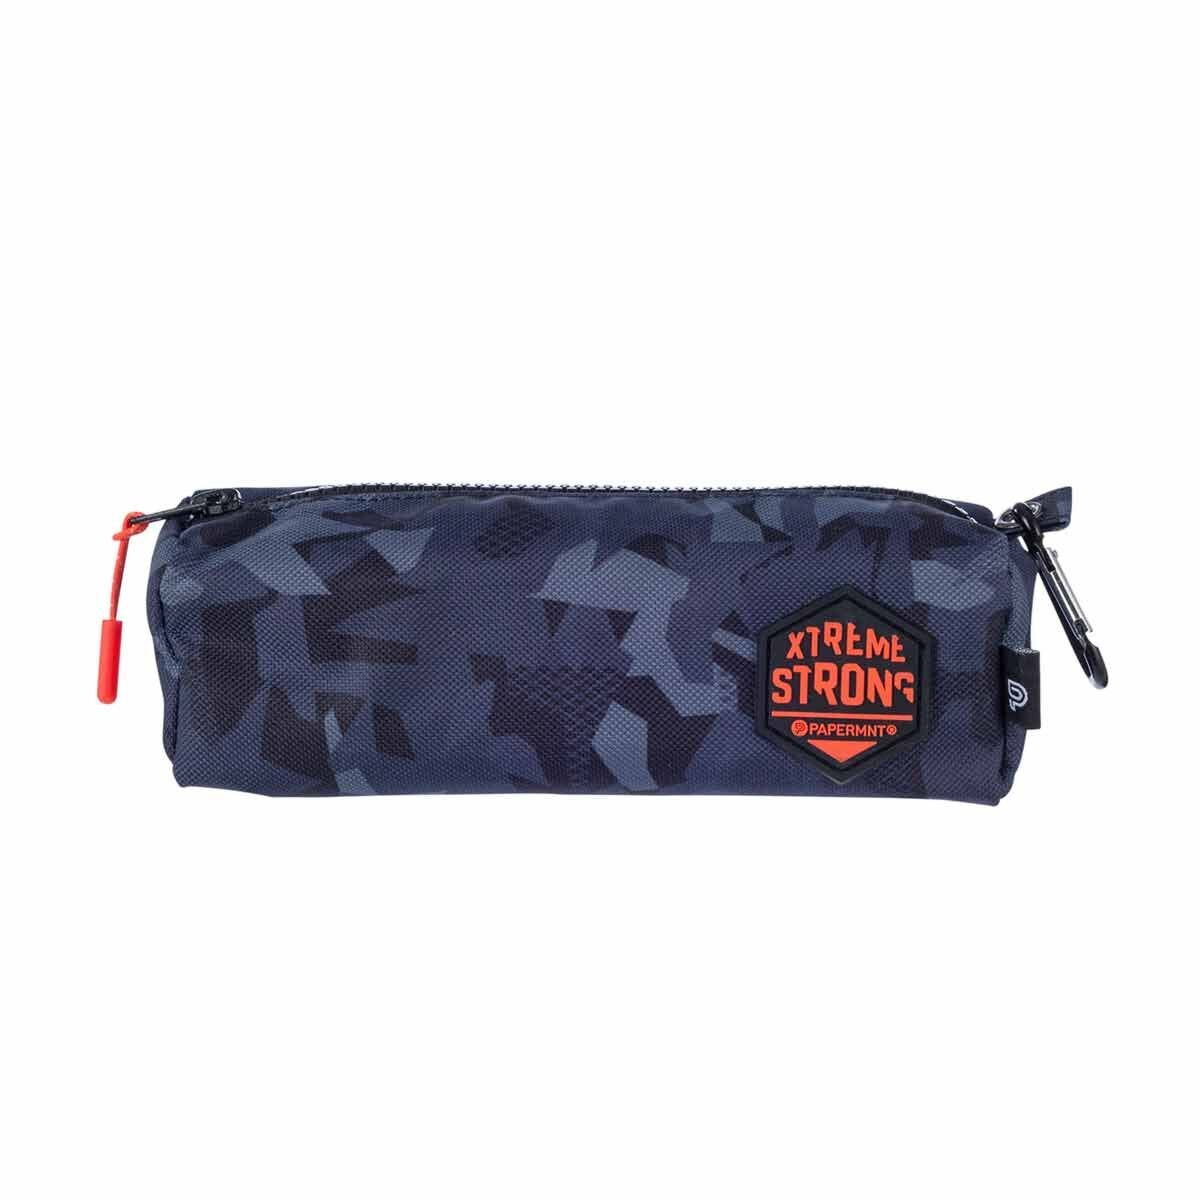 ExtremeStrong Camouflage Pencil Case